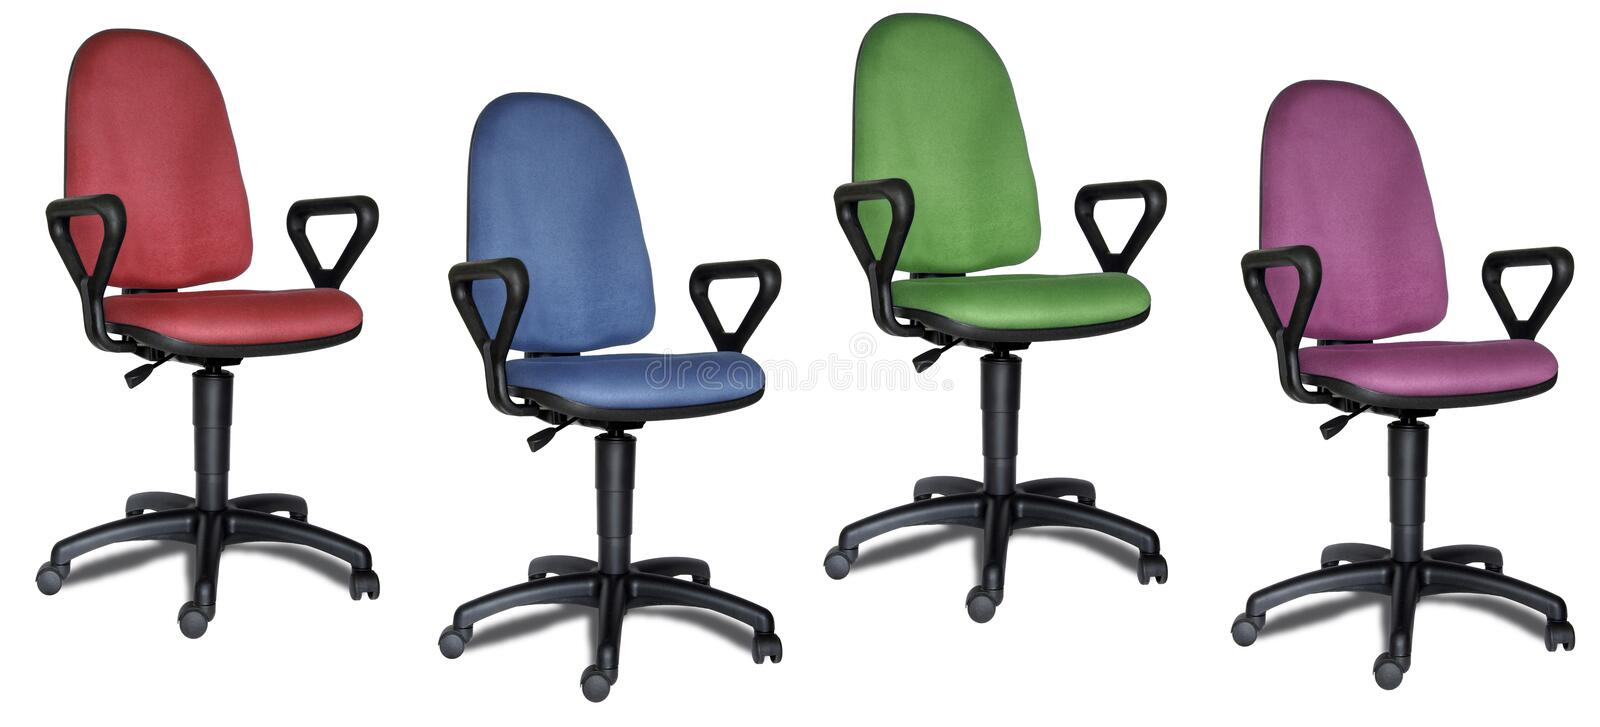 Attractive Download Colorful Office Chairs Stock Photo. Image Of Desk, Green   1044952